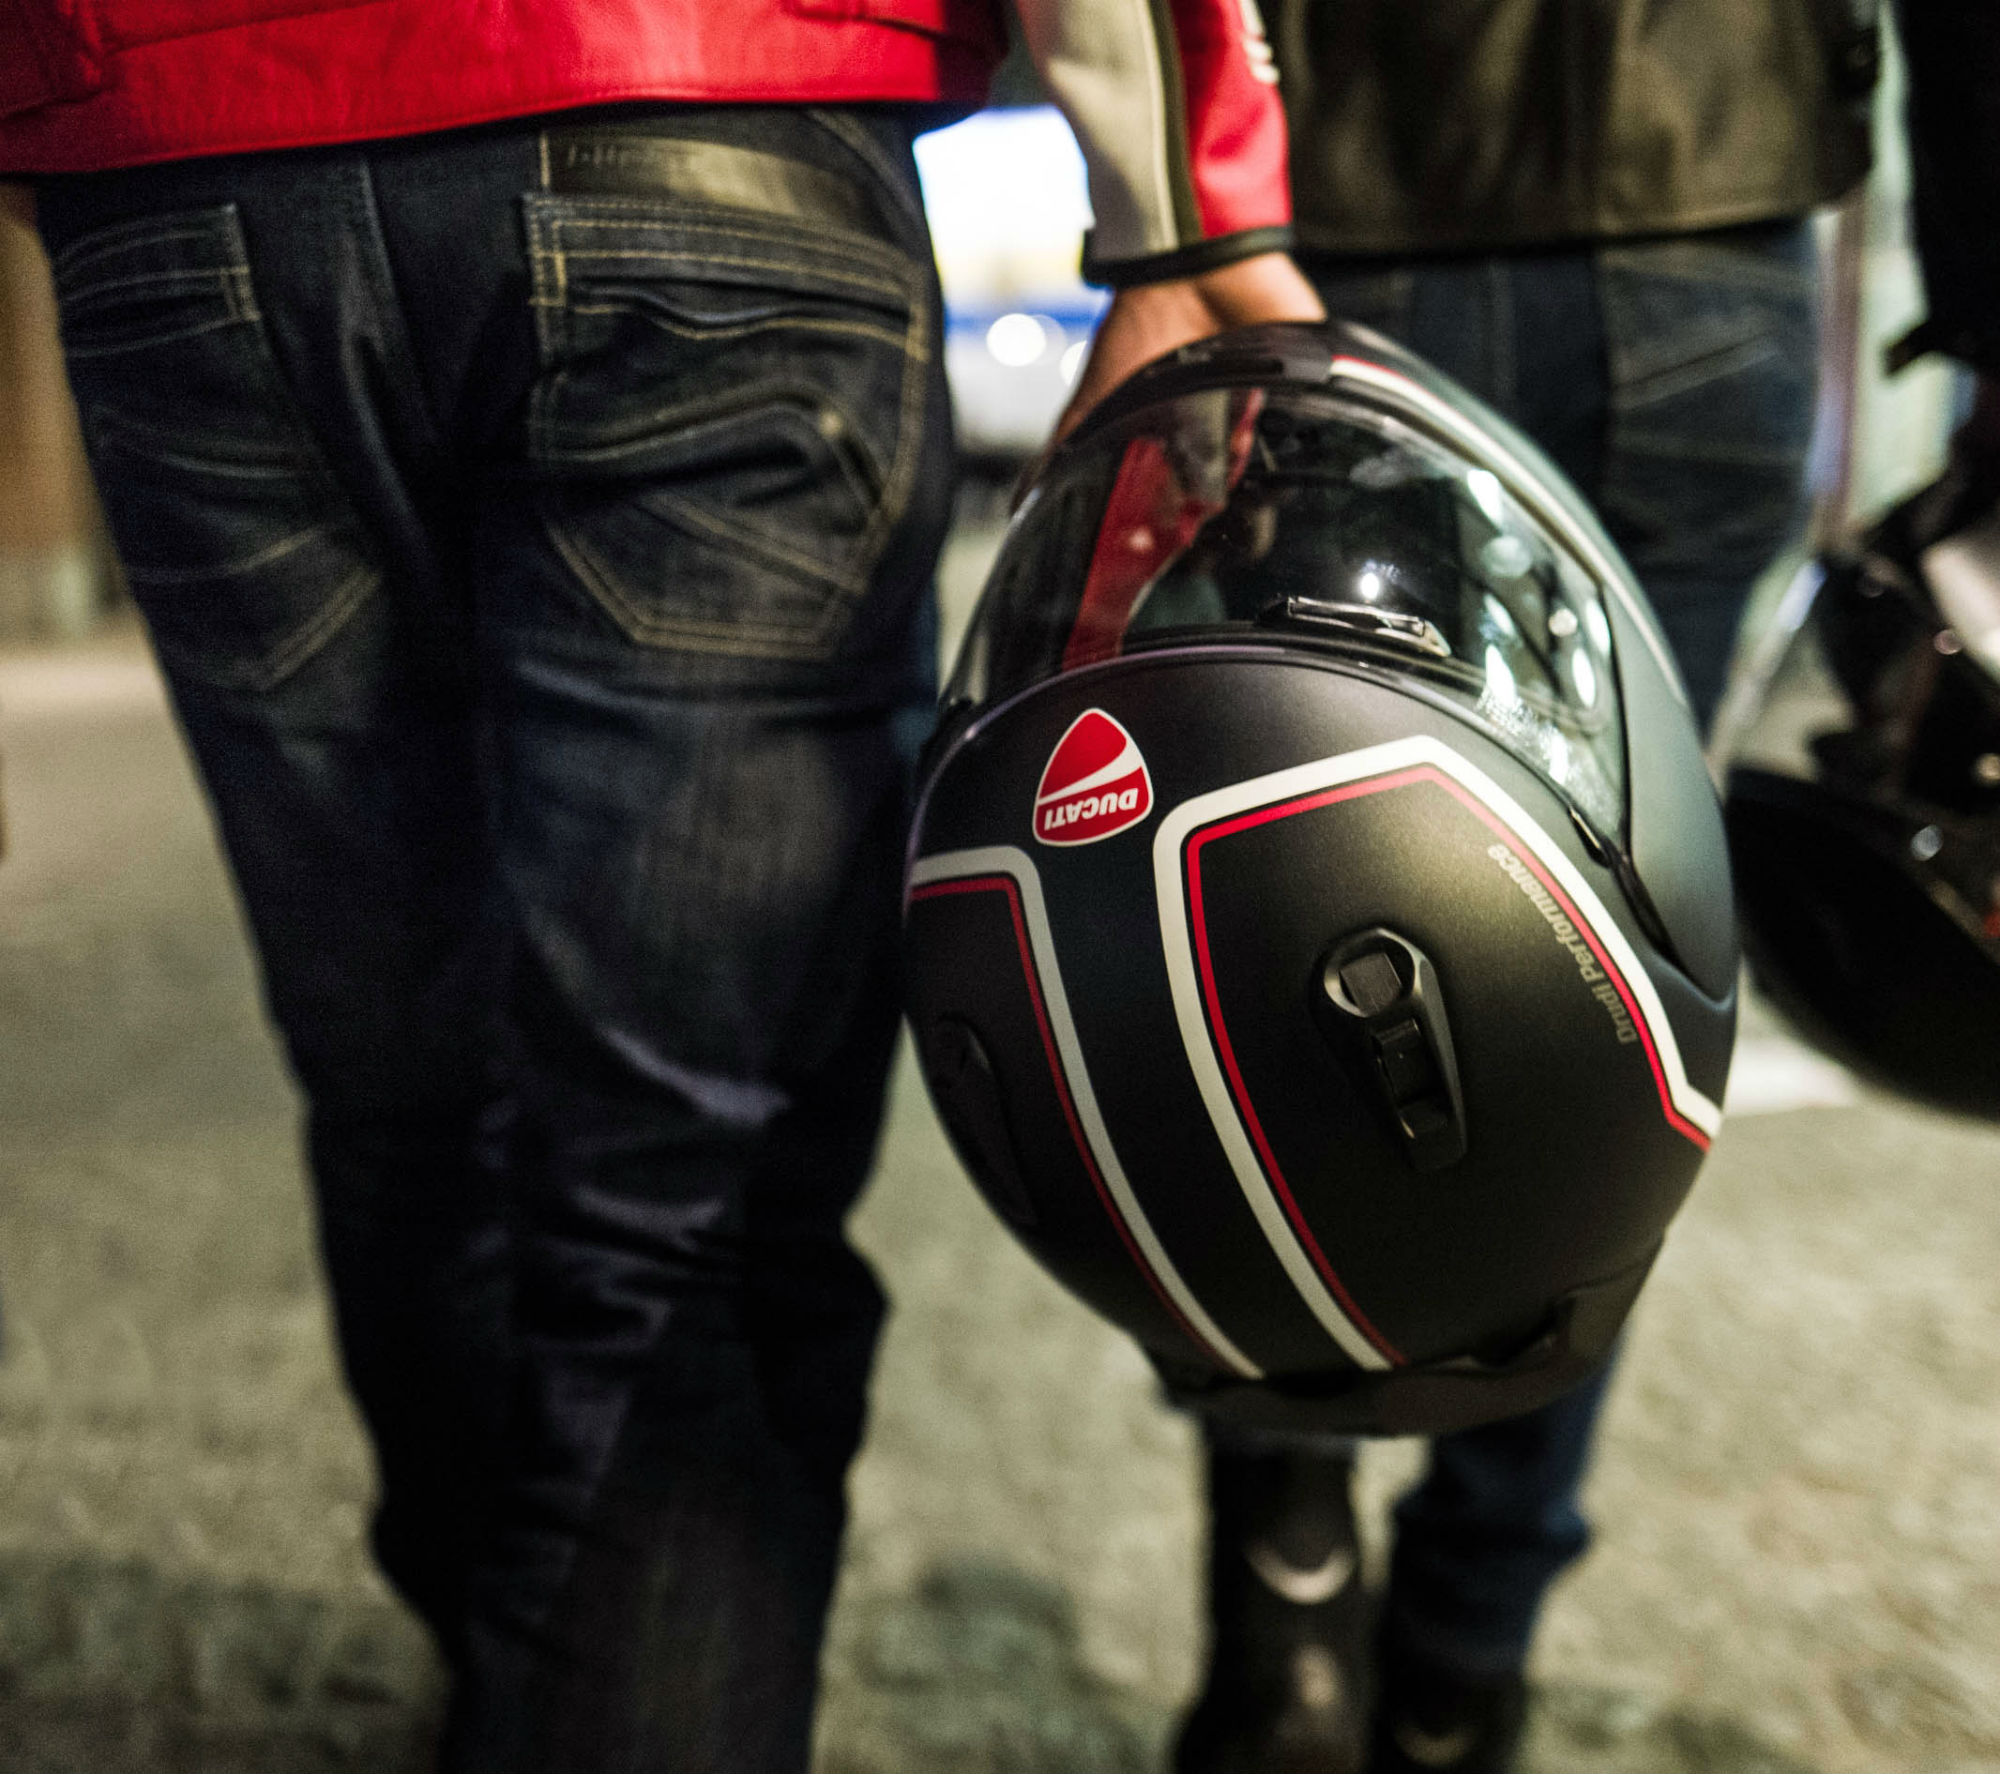 Get £100 off a new Ducati Arai helmet by giving up your old lid